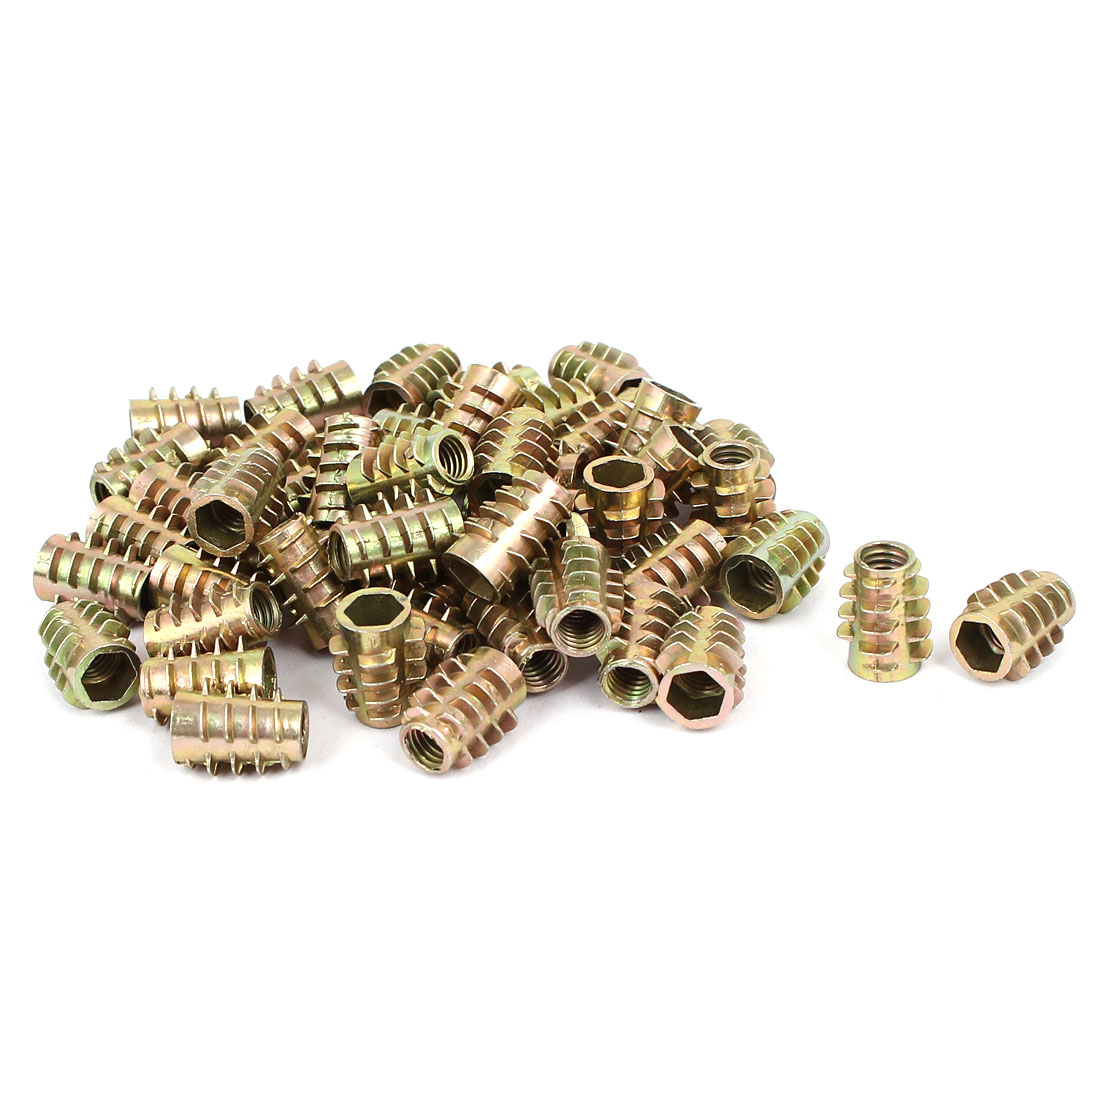 Wood Furniture Zinc Alloy Hex Socket Insert Screws E-Nuts M6x15mm 50pcs